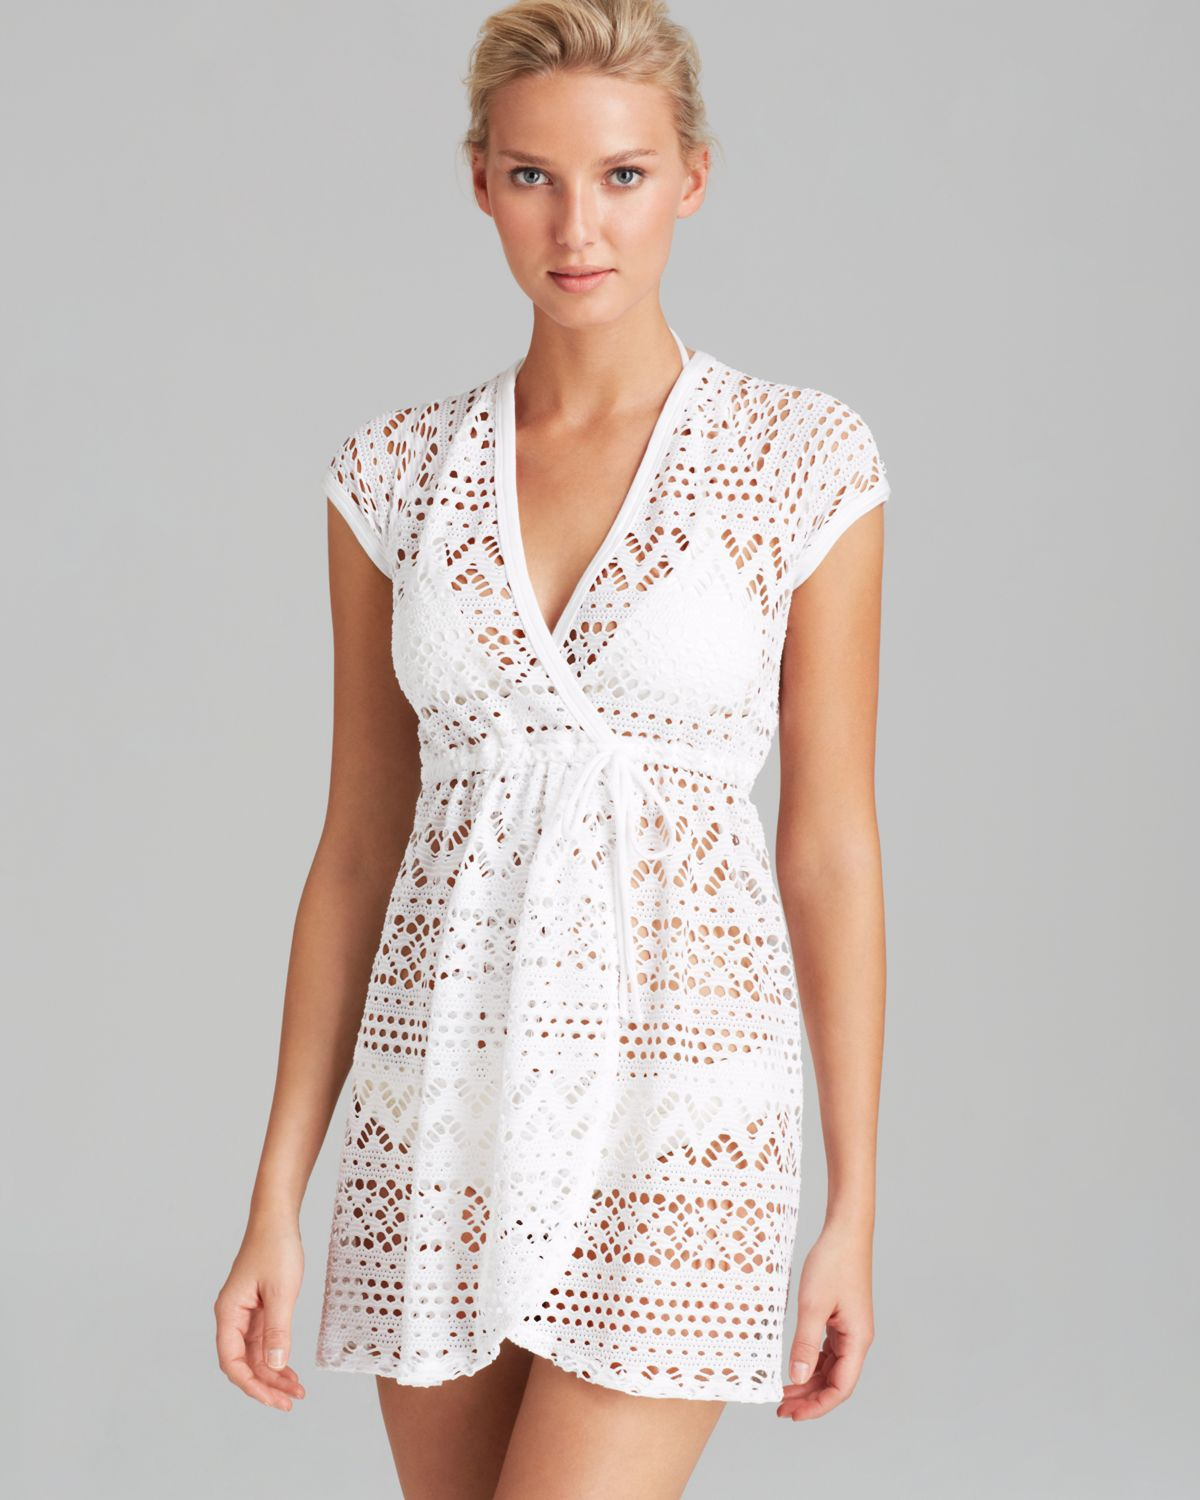 4018b424d0640 Robin Piccone Penelope Sheer Wrap Dress Swim Cover Up in White - Lyst